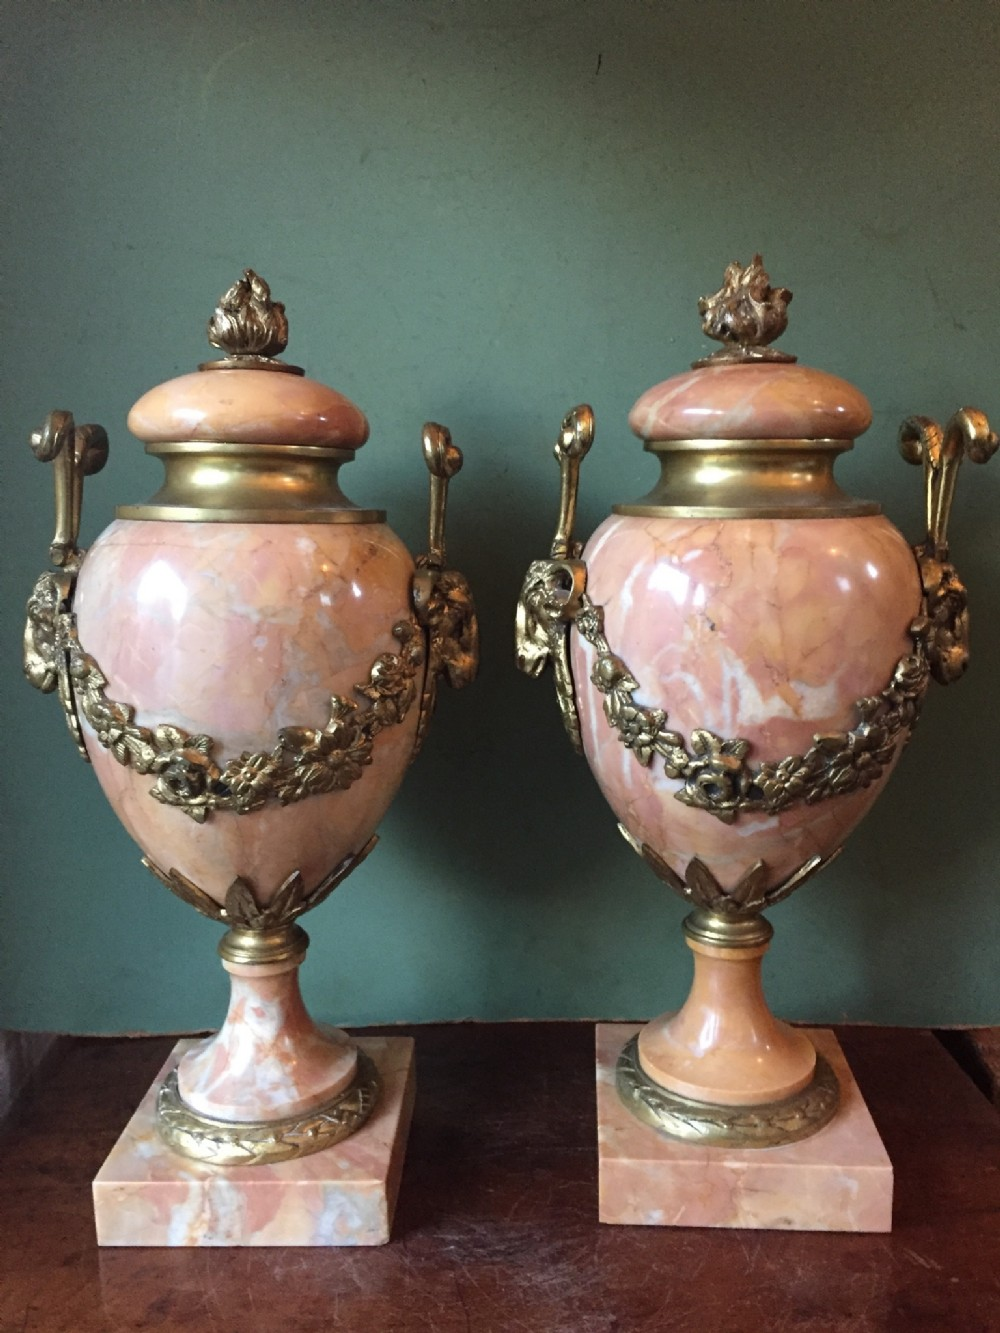 pair of early c20th french louis xvi style ormolumounted marble urns